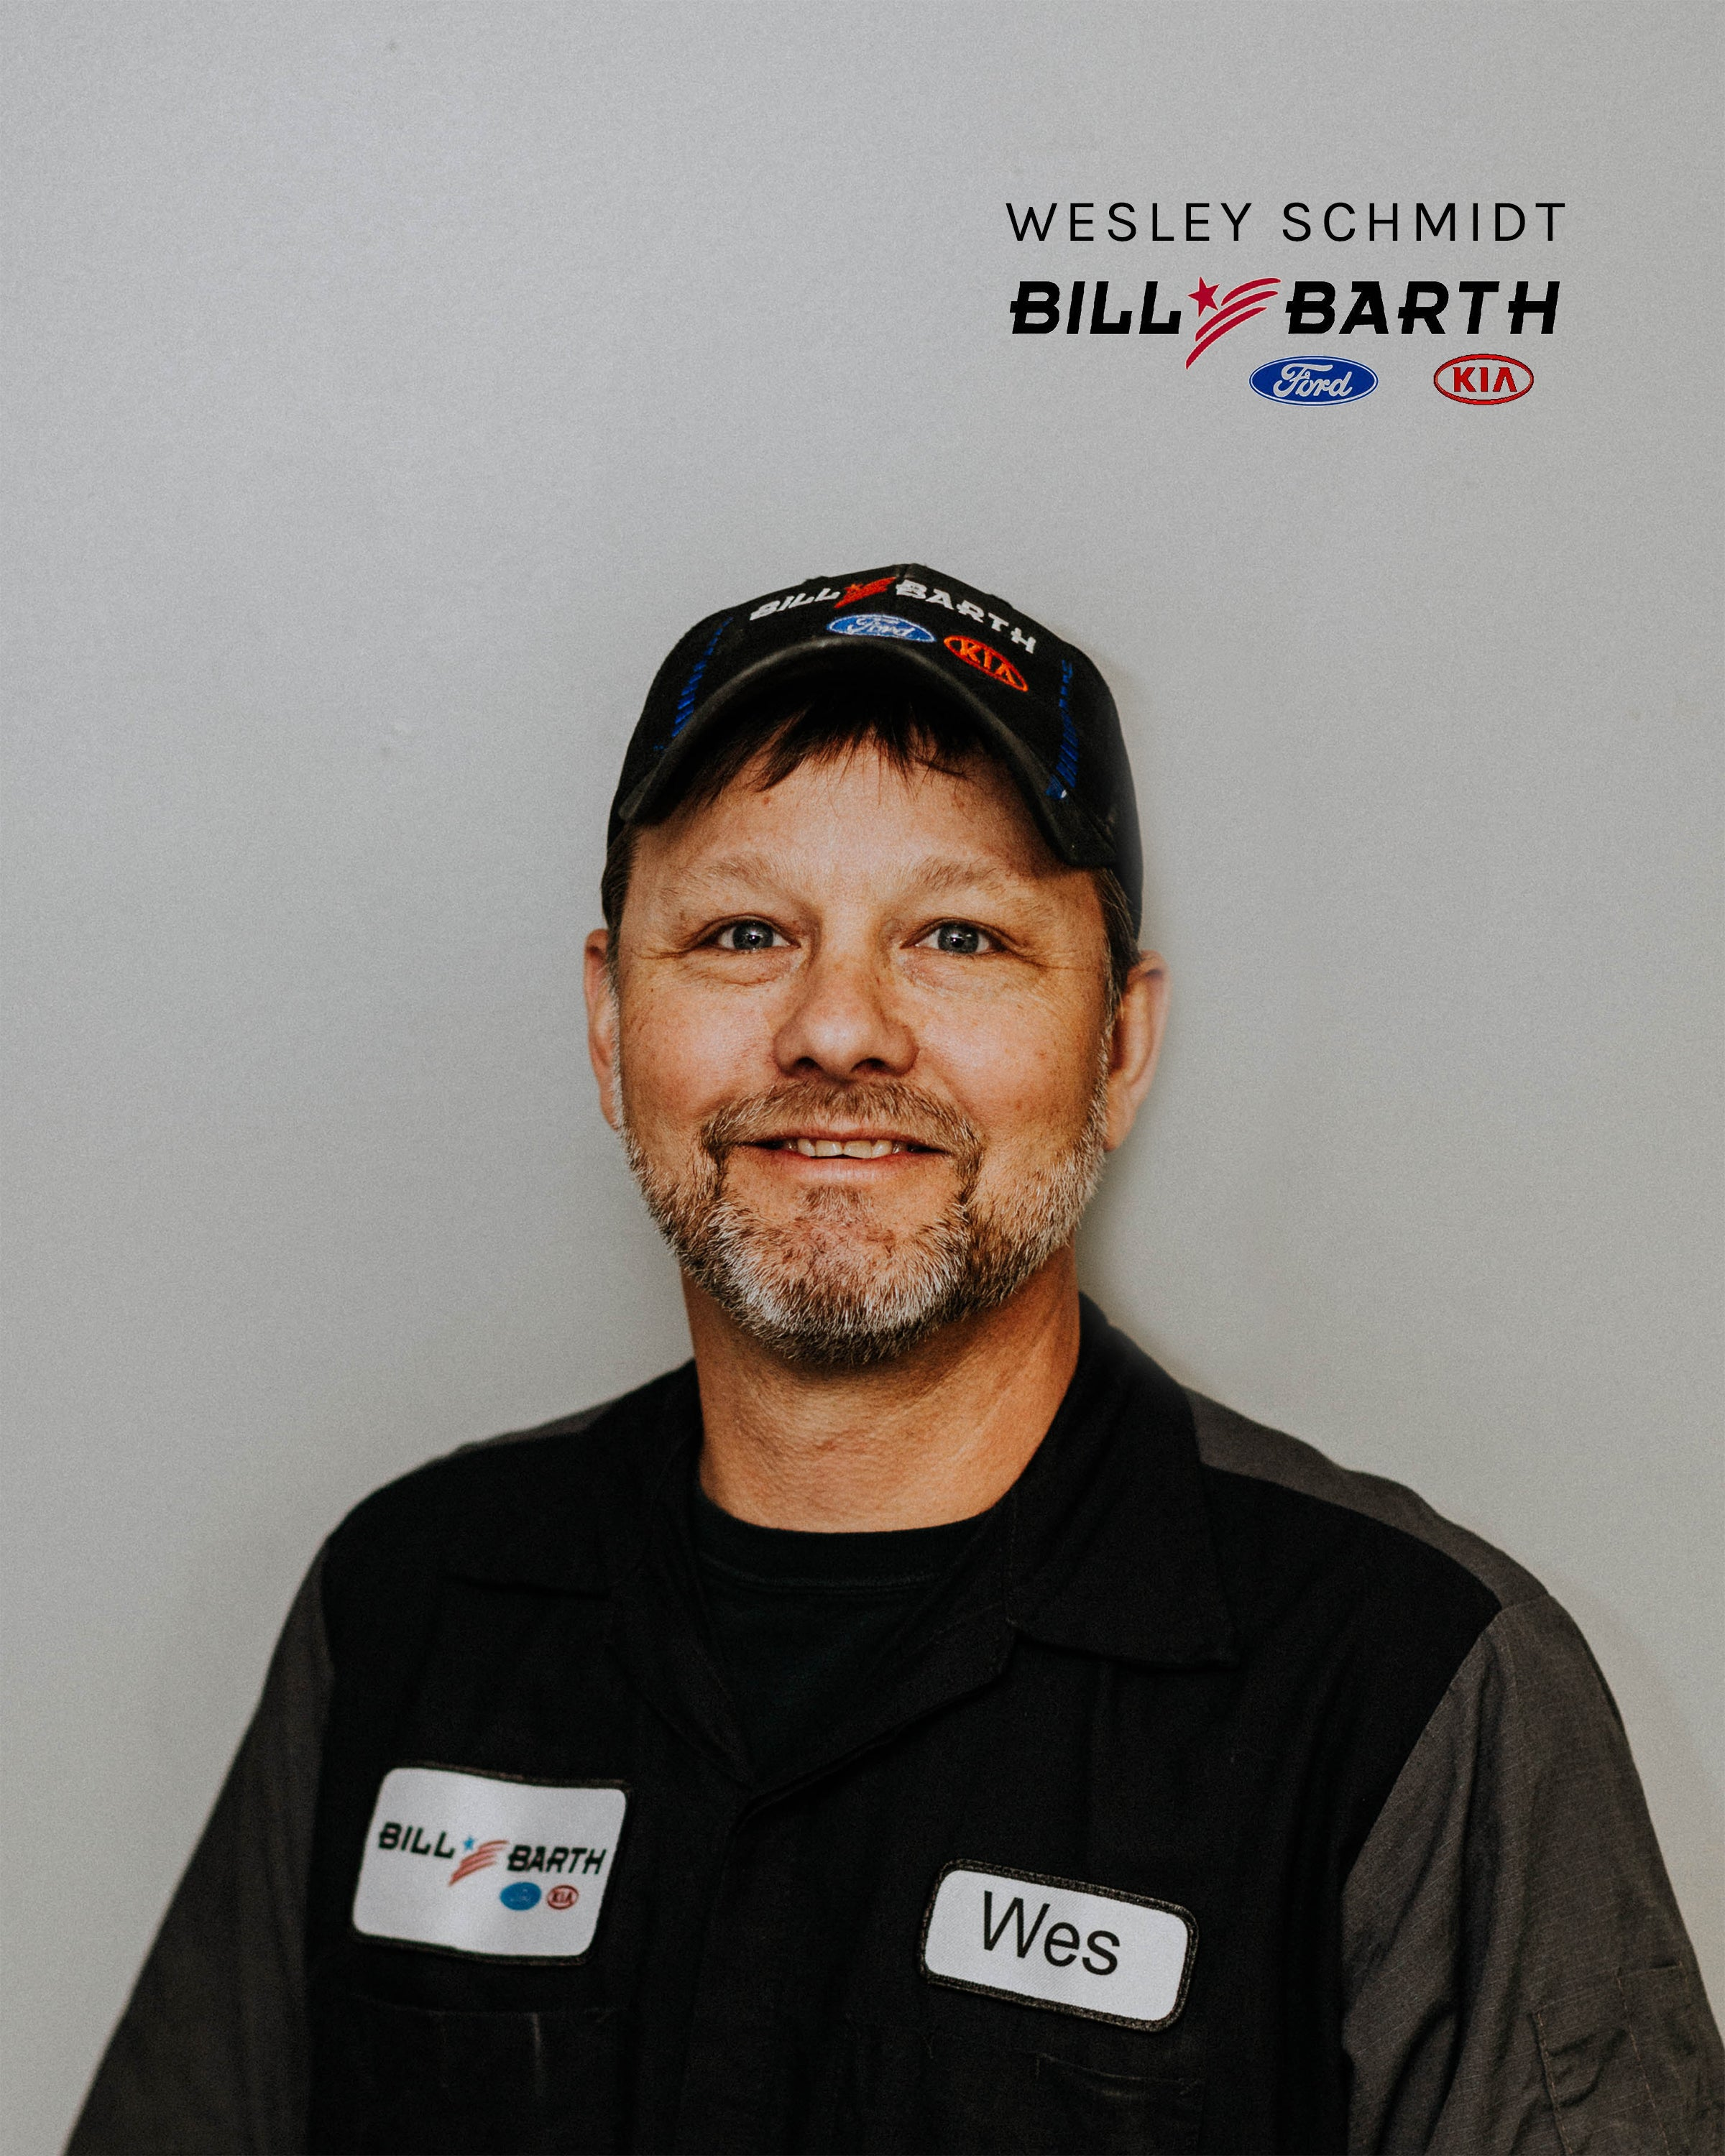 dealership staff bill barth kia bismarck mandan nd bill barth kia bismarck mandan nd